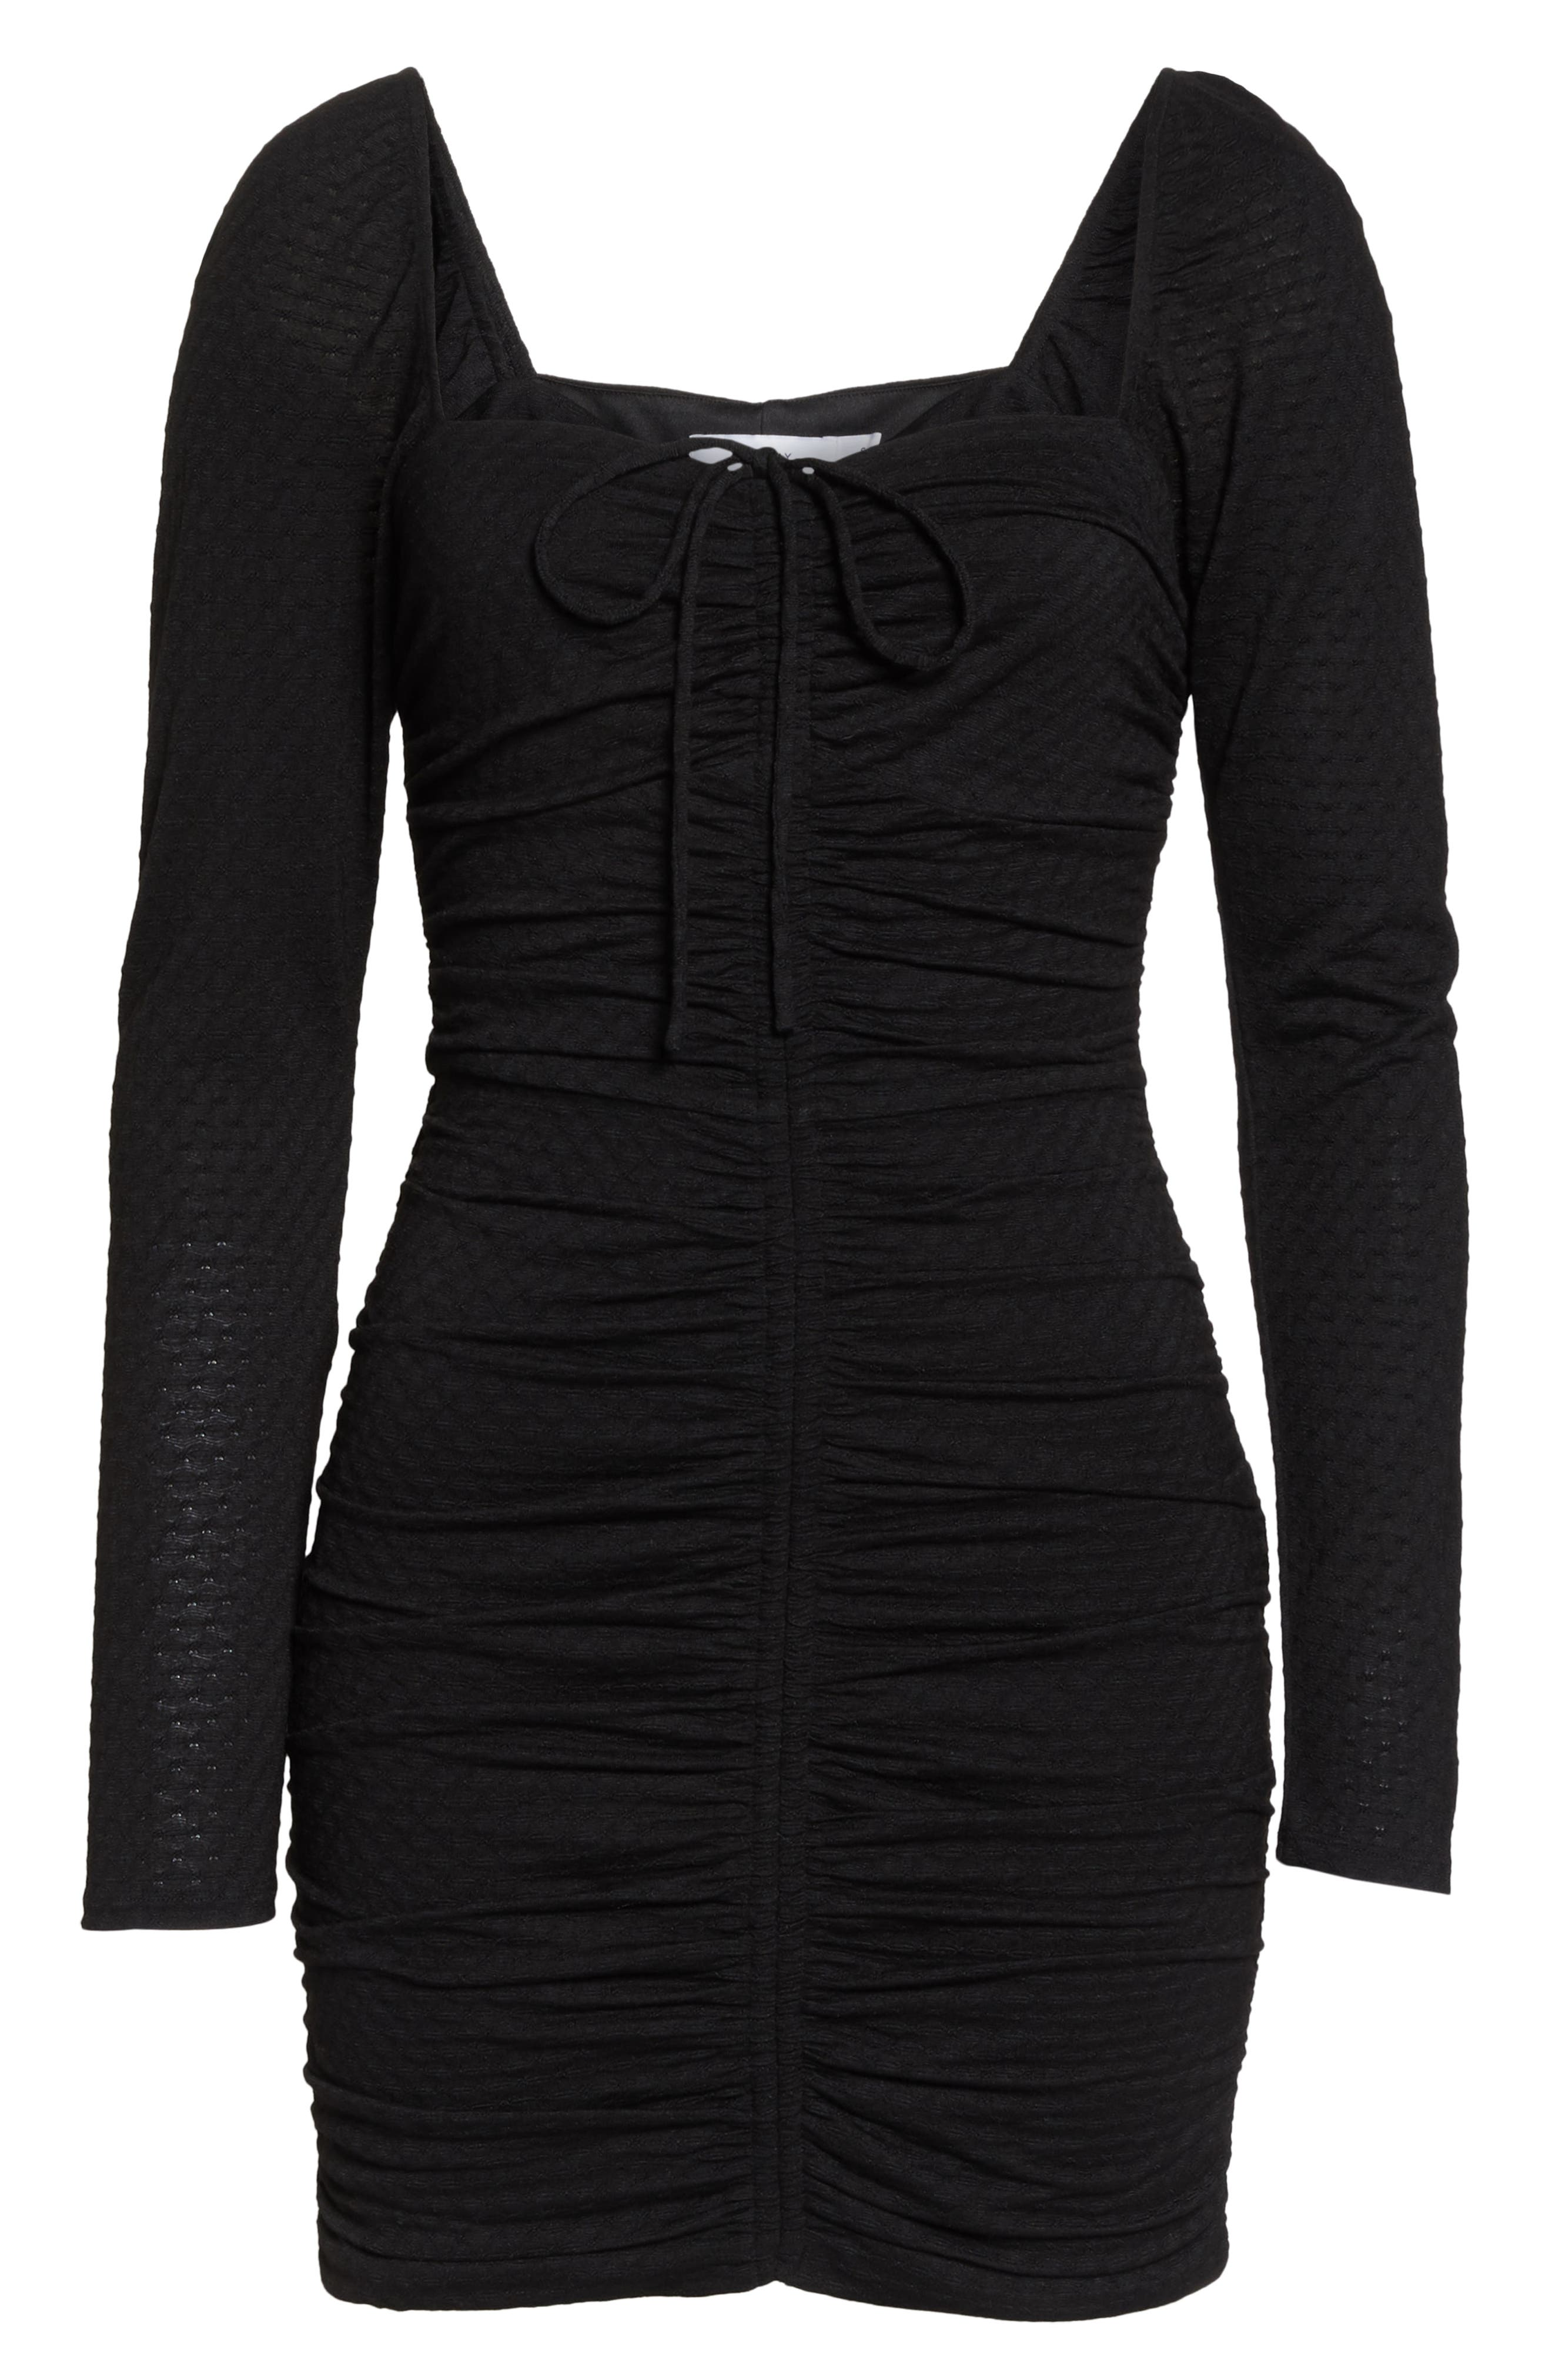 ALI & JAY, Ruched Body-Con Dress, Alternate thumbnail 7, color, BLACK